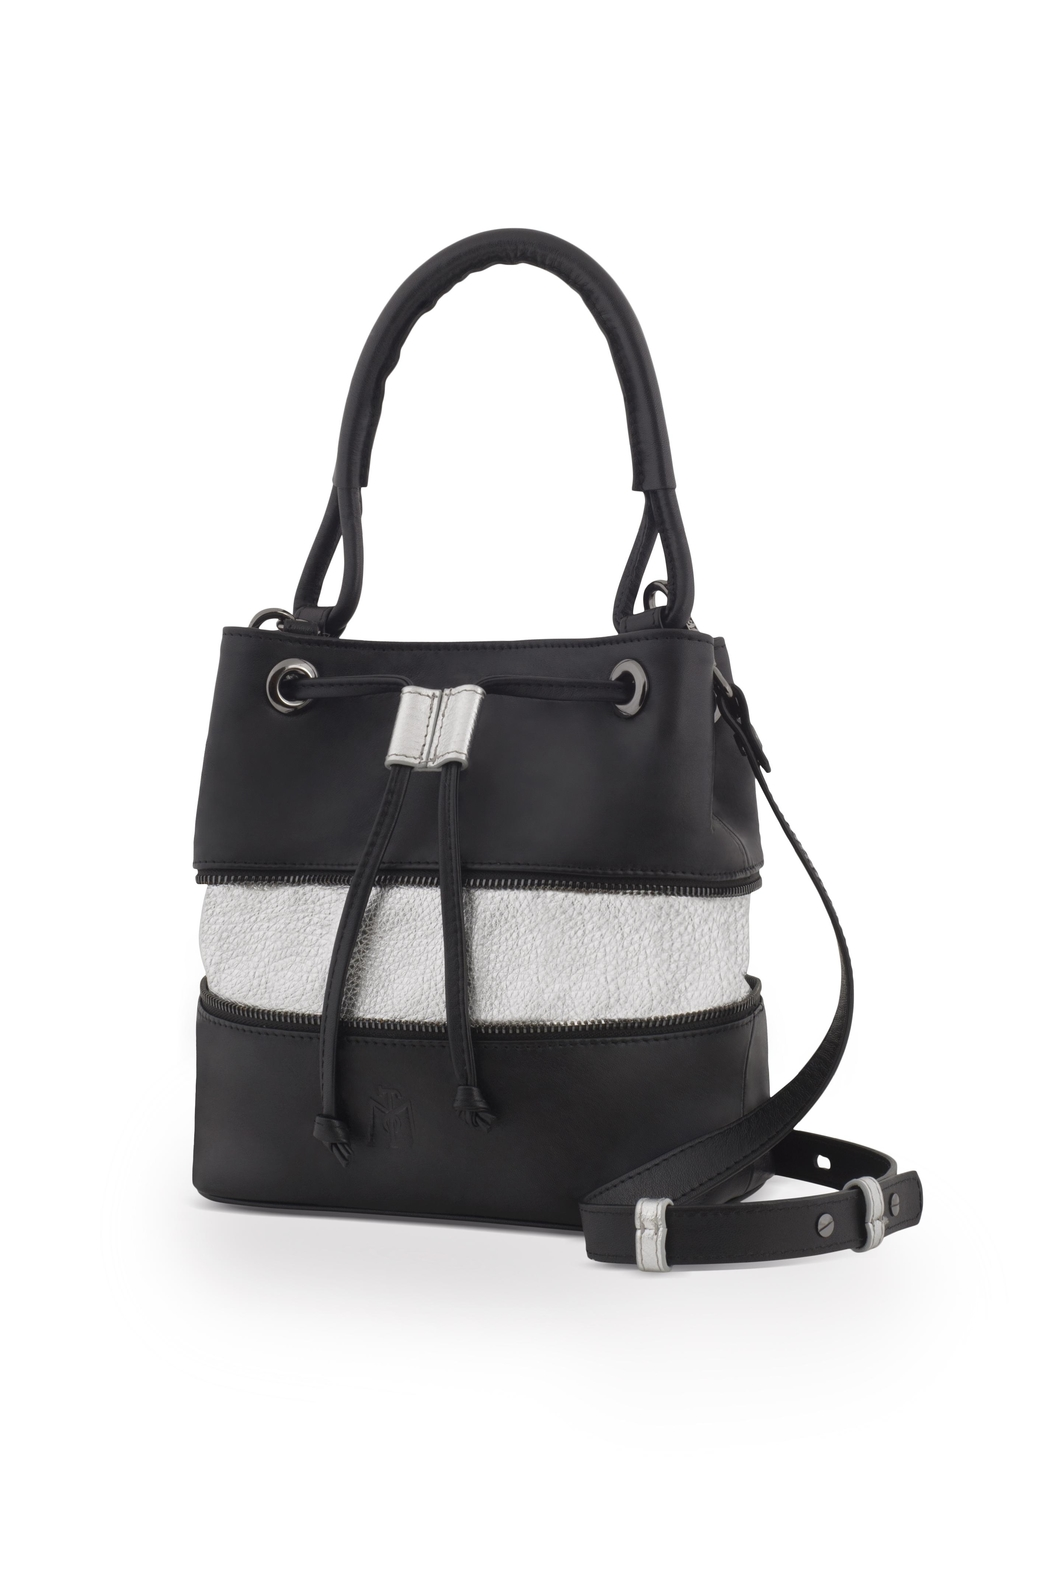 Martella Bags Black-Silver Bucket Bag - Main Image